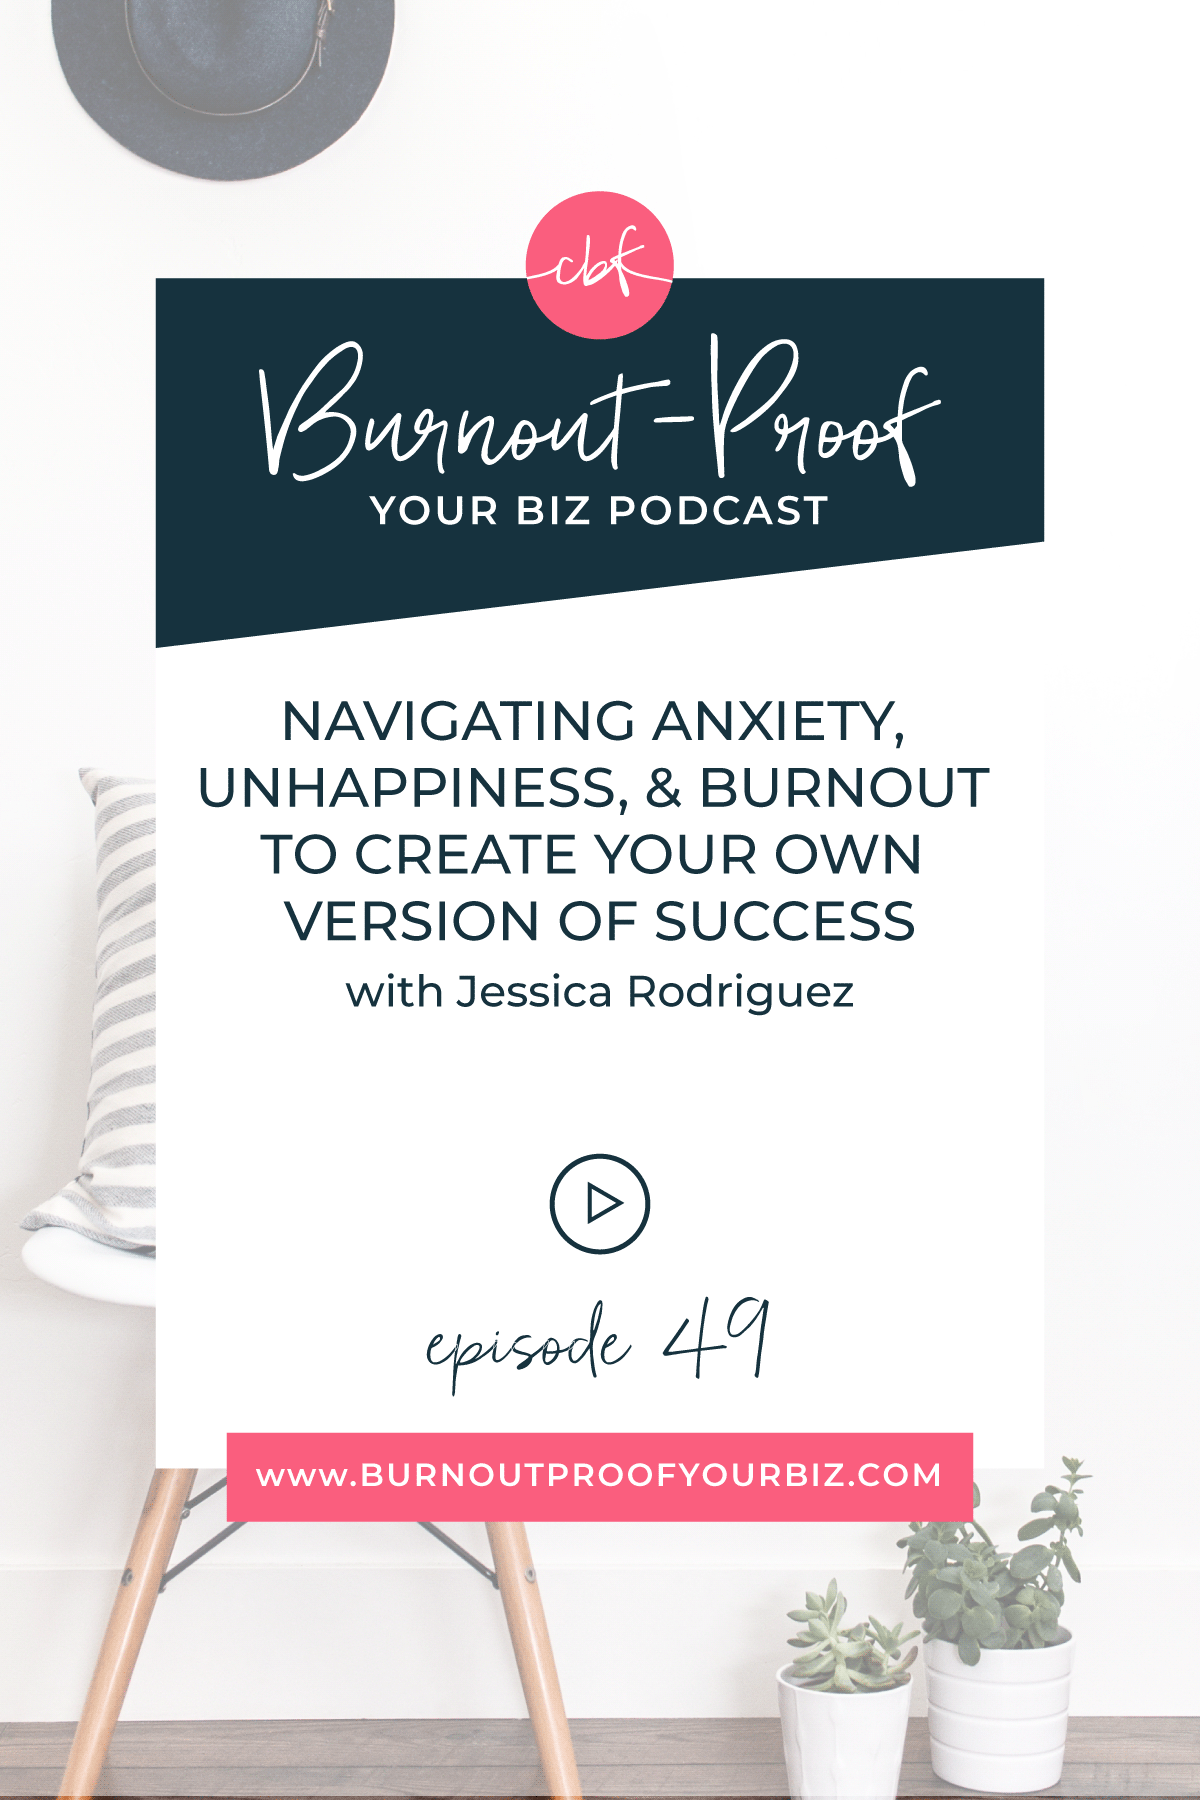 Burnout-Proof Your Biz Podcast with Chelsea B Foster | Episode 049 - Navigating Anxiety, Unhappiness, and Burnout to Create Your Own Version of Success with Jessica Rodriguez | Learn how to run your biz and live your dream life on your own terms without the fear of burnout. ——  BUSINESS COACH | WORKFLOW & PRODUCTIVITY SPECIALIST | MENTAL HEALTH FOR SMALL BUSINESSES | ANXIETY & DEPRESSION | BURNOUT | CREATING YOUR OWN VERSION OF SUCCESS | COMPARISON SYNDROME | ROLLER COASTER OF ENTREPRENEURSHIP | SUPPORT SYSTEM | REALITY OF RUNNING A BUSINESS | WHAT IS SUCCESS | WHAT DOES SUCCESS LOOK LIKE | HOW TO DEFINE SUCCESS | FINDING YOUR PURPOSE | HEALTHY HEADSPACE | OVERWHELMED